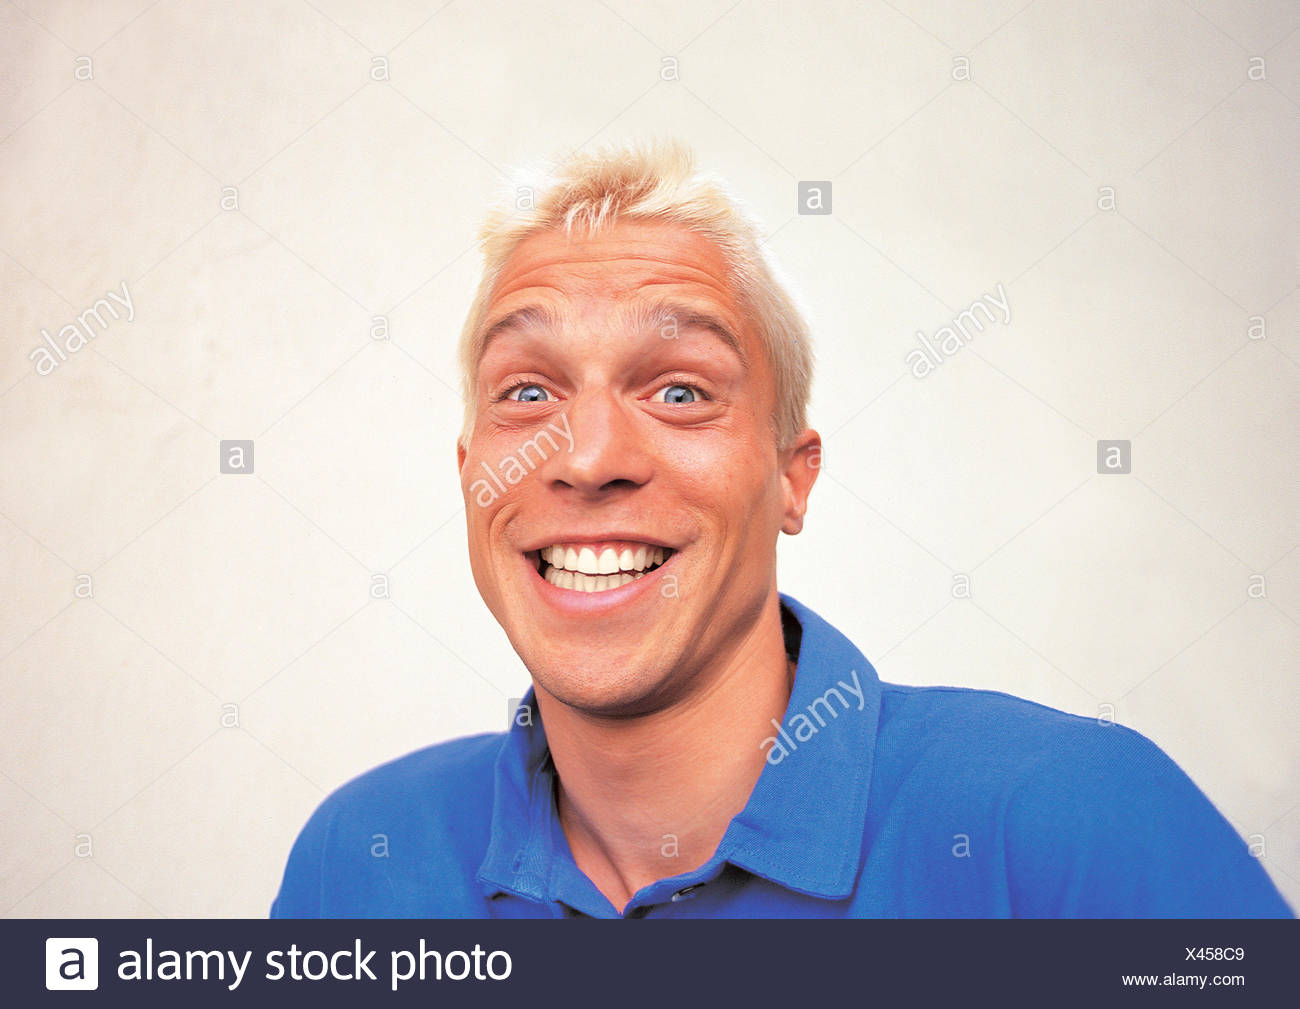 young man laughing make grimace - Stock Image